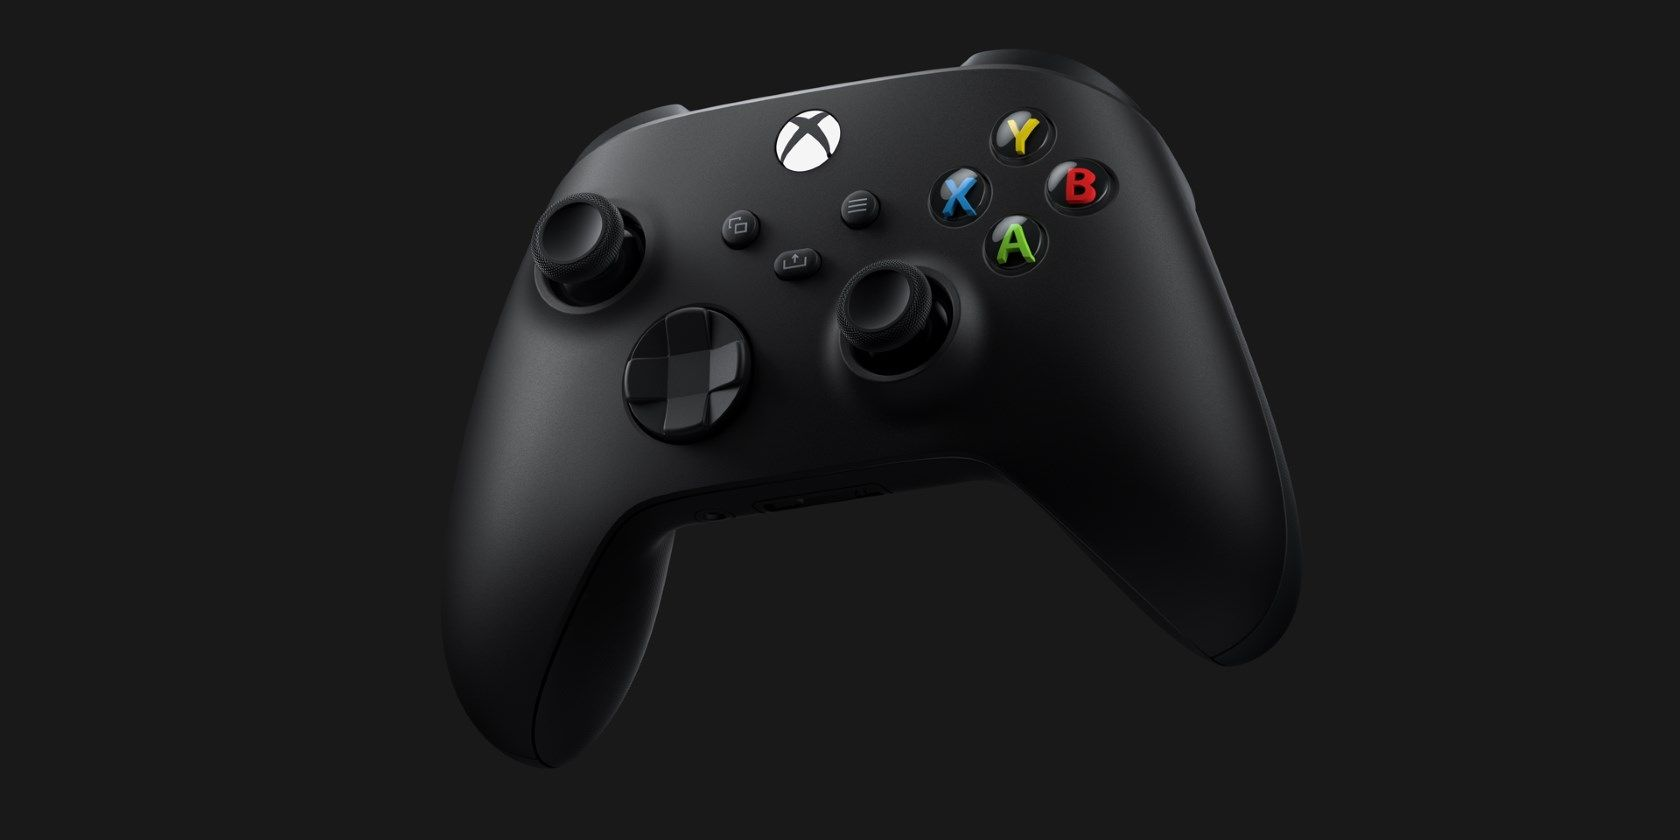 The Xbox Series X Controller Is Compatible With Android and iOS